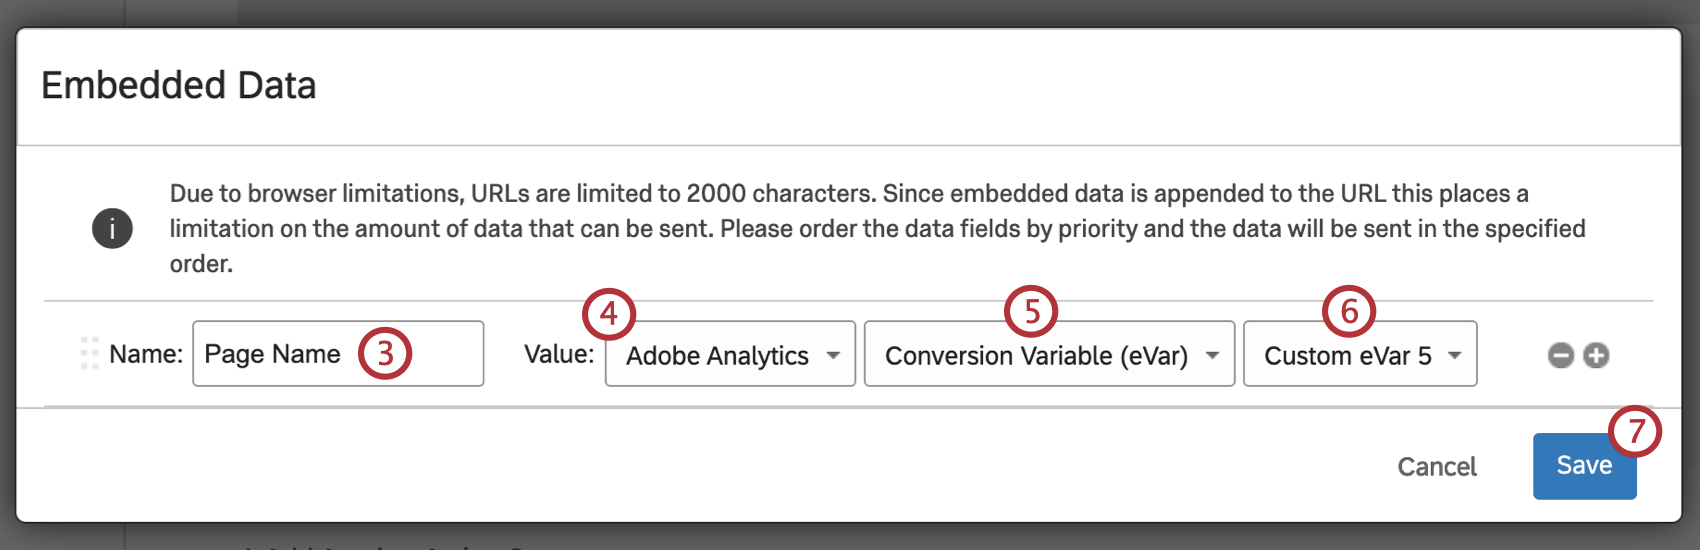 Embedded Data window where the embedded data is set to PAge Name Value of Adobe Analytics Converson Variable (eVar) No Integration equal to Custom eVar 5